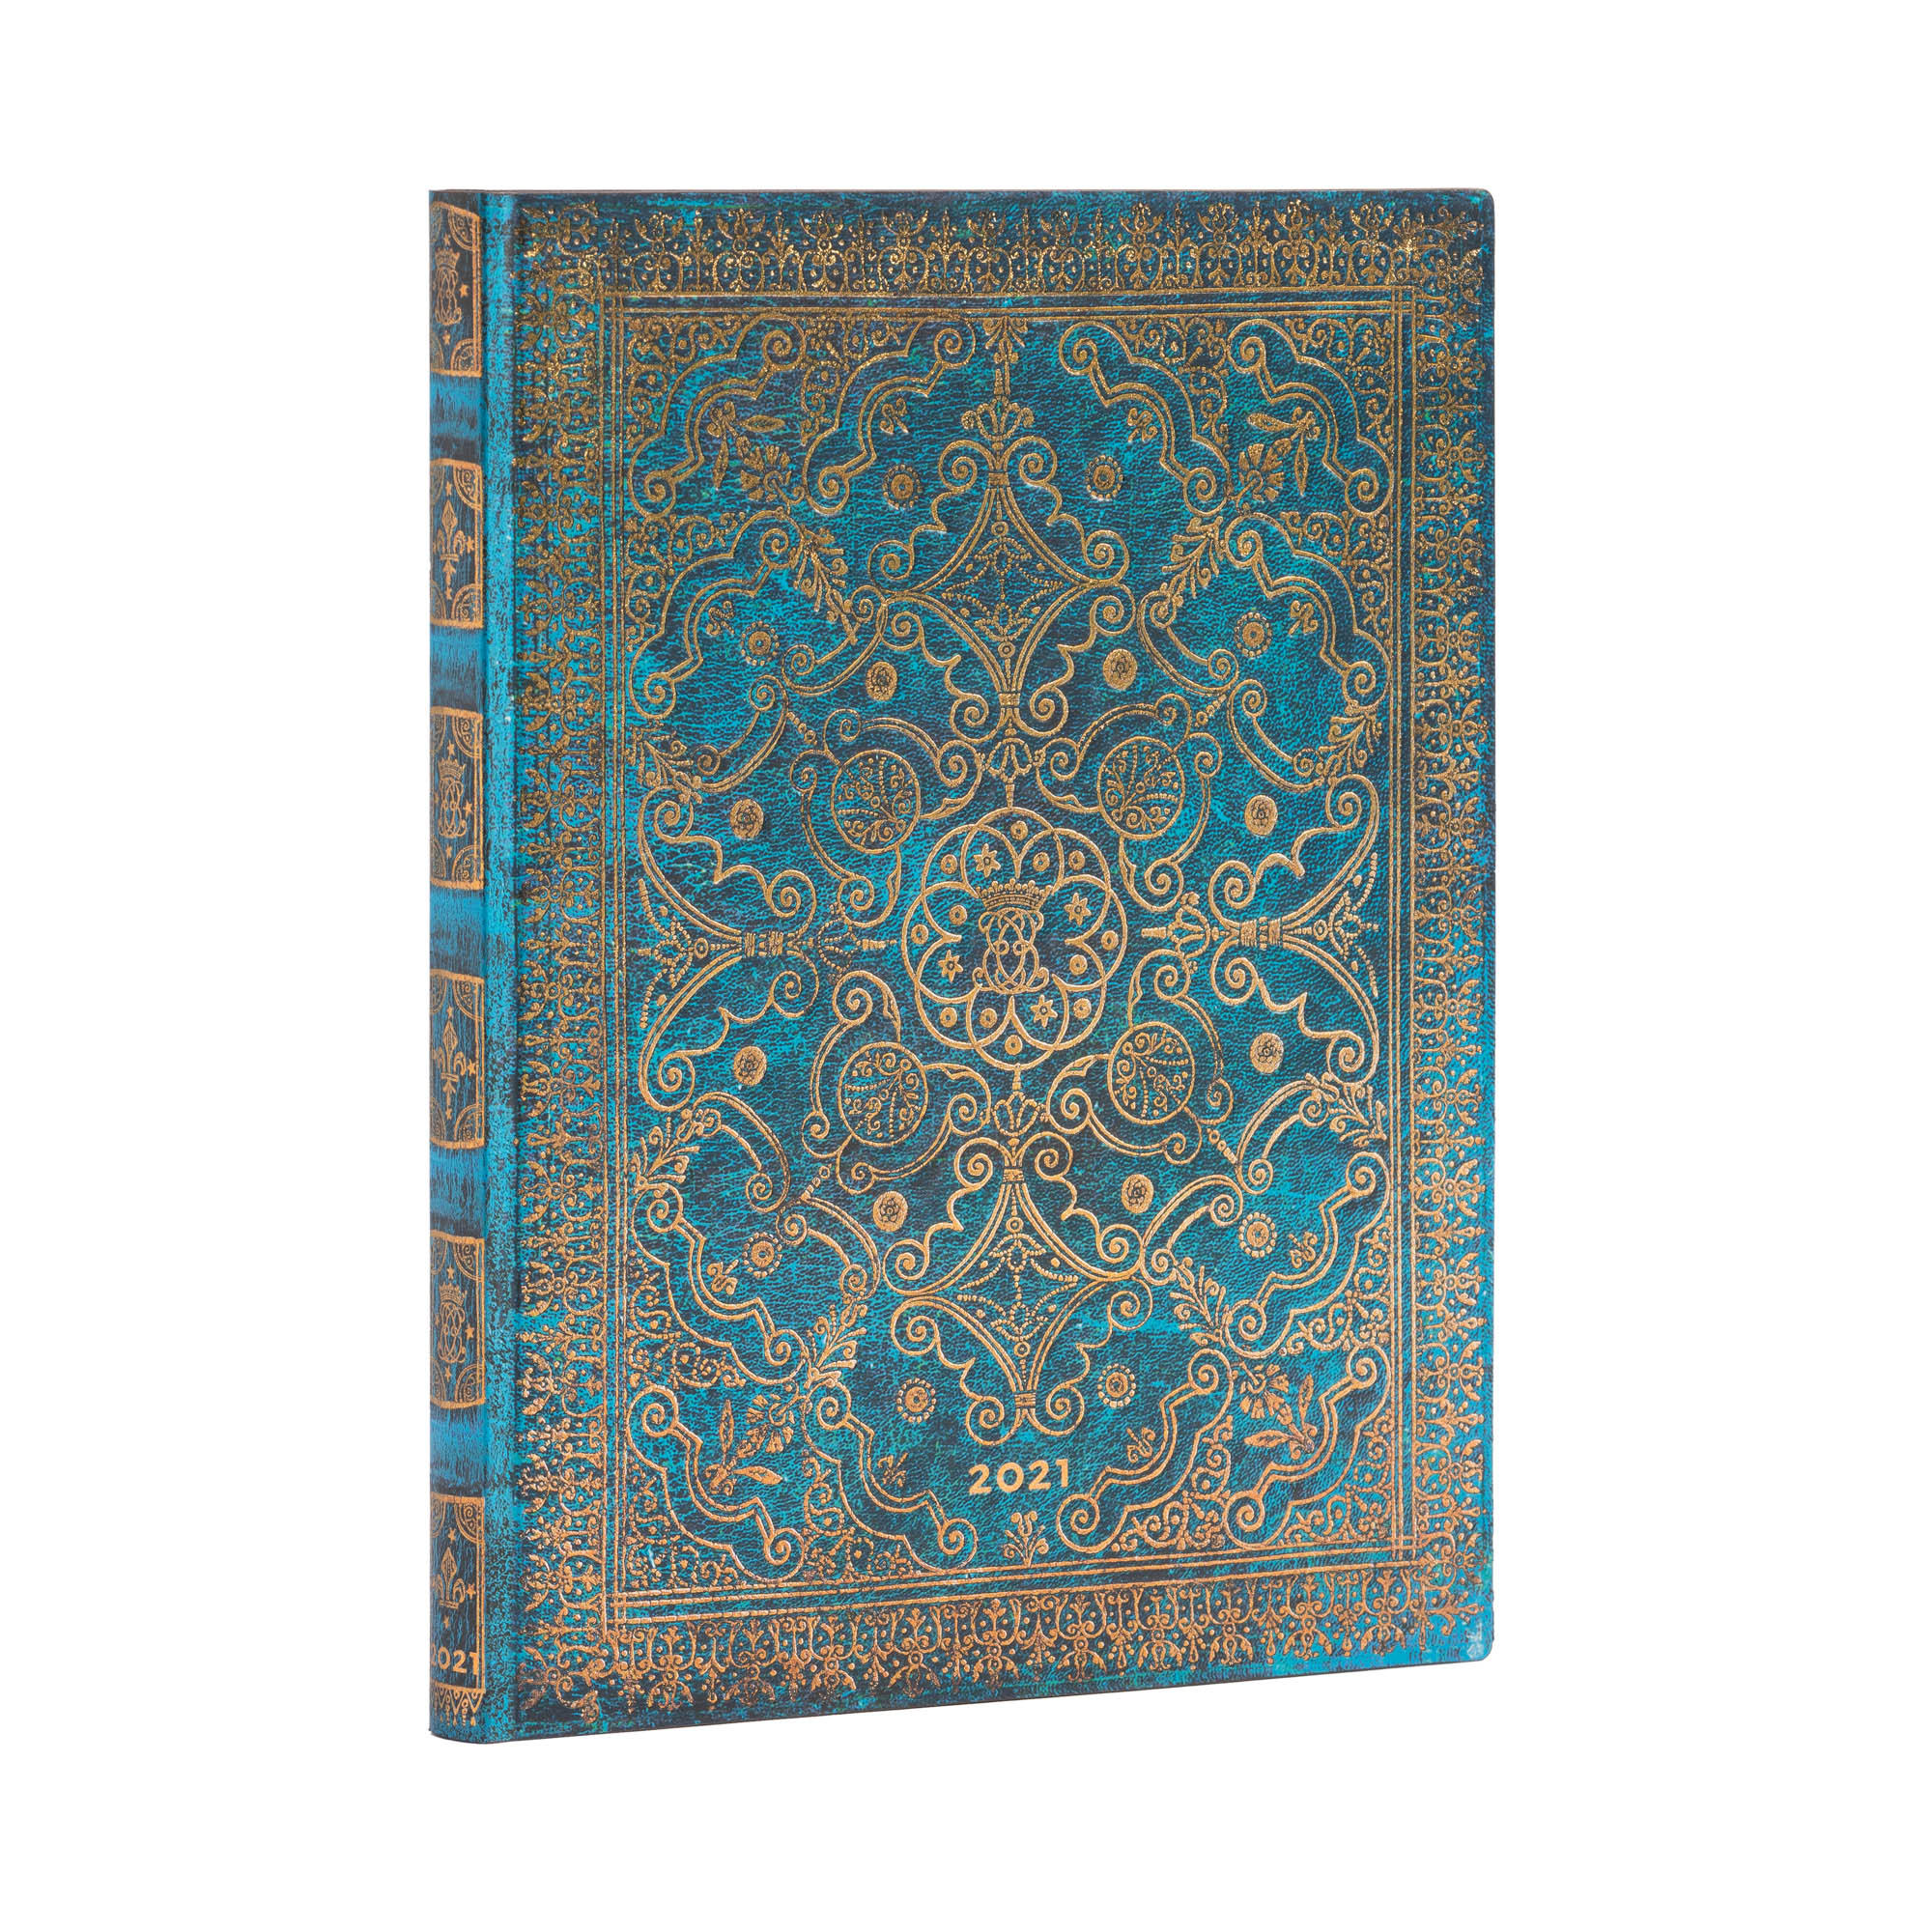 Paperblanks Flexi Ultra Azure 2021 Week-At-A-Time Planner